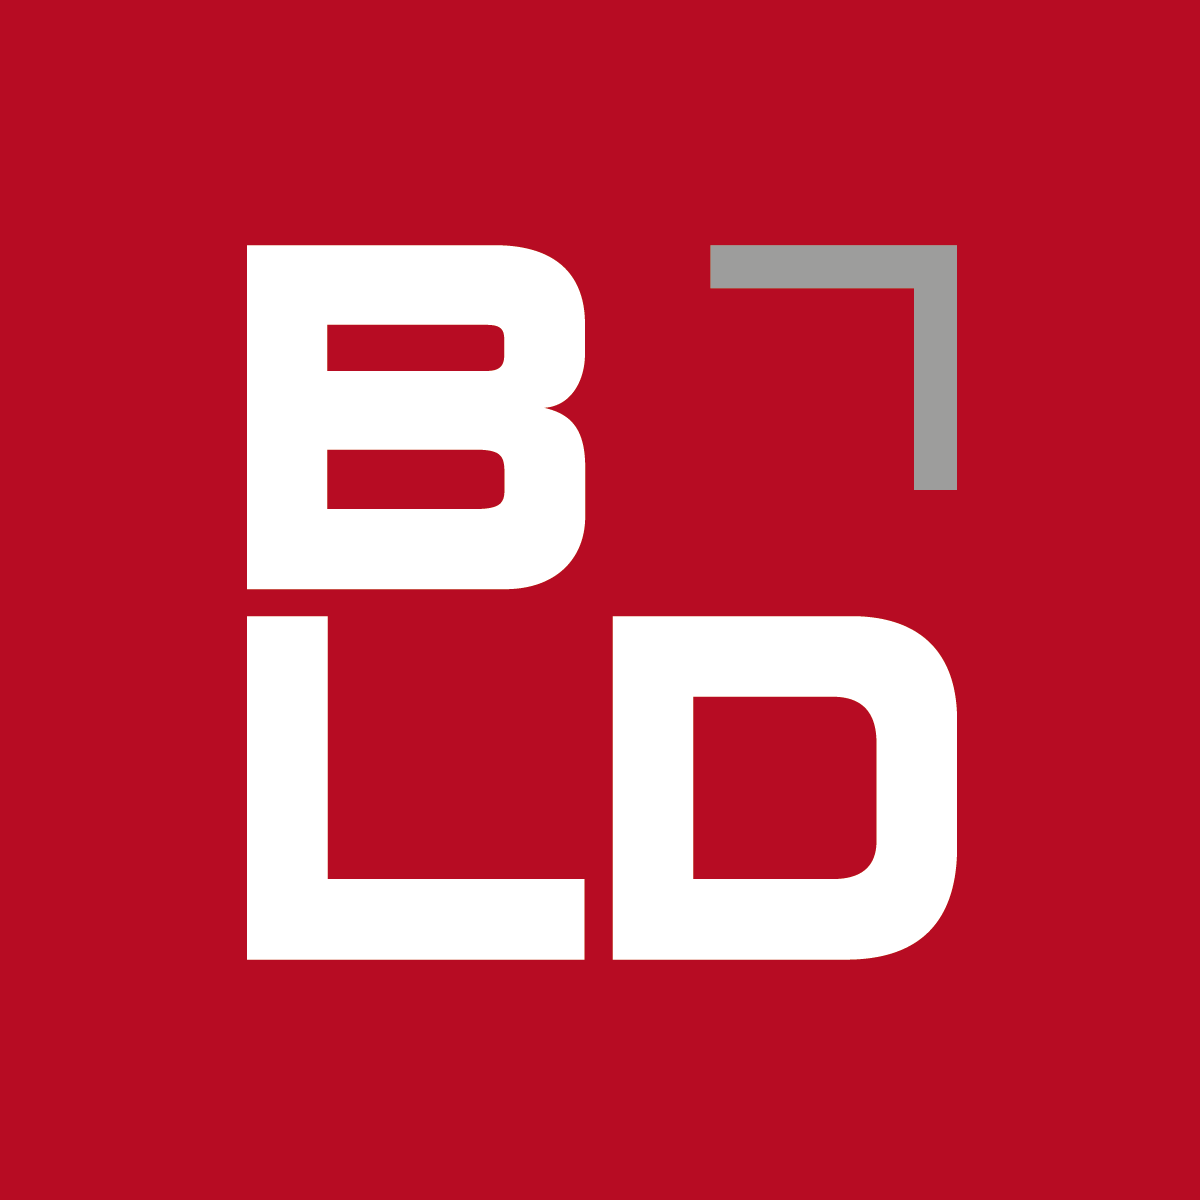 BLD_logo_RGB_red solid background